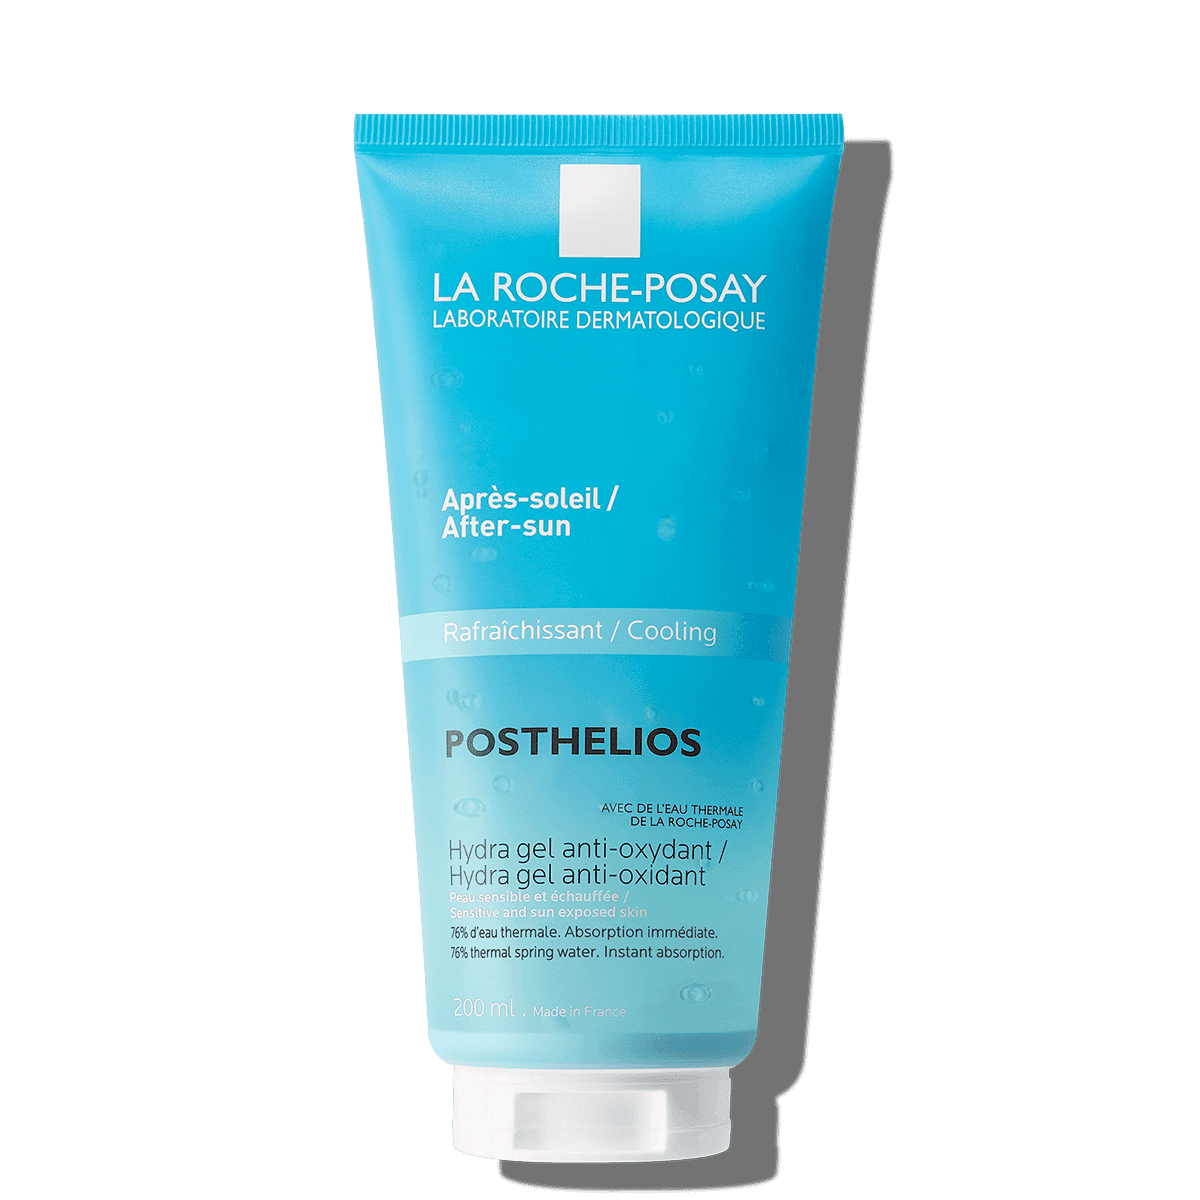 La Roche Posay ProductPage After Sun Posthelios Hydragel 200ml 3337875